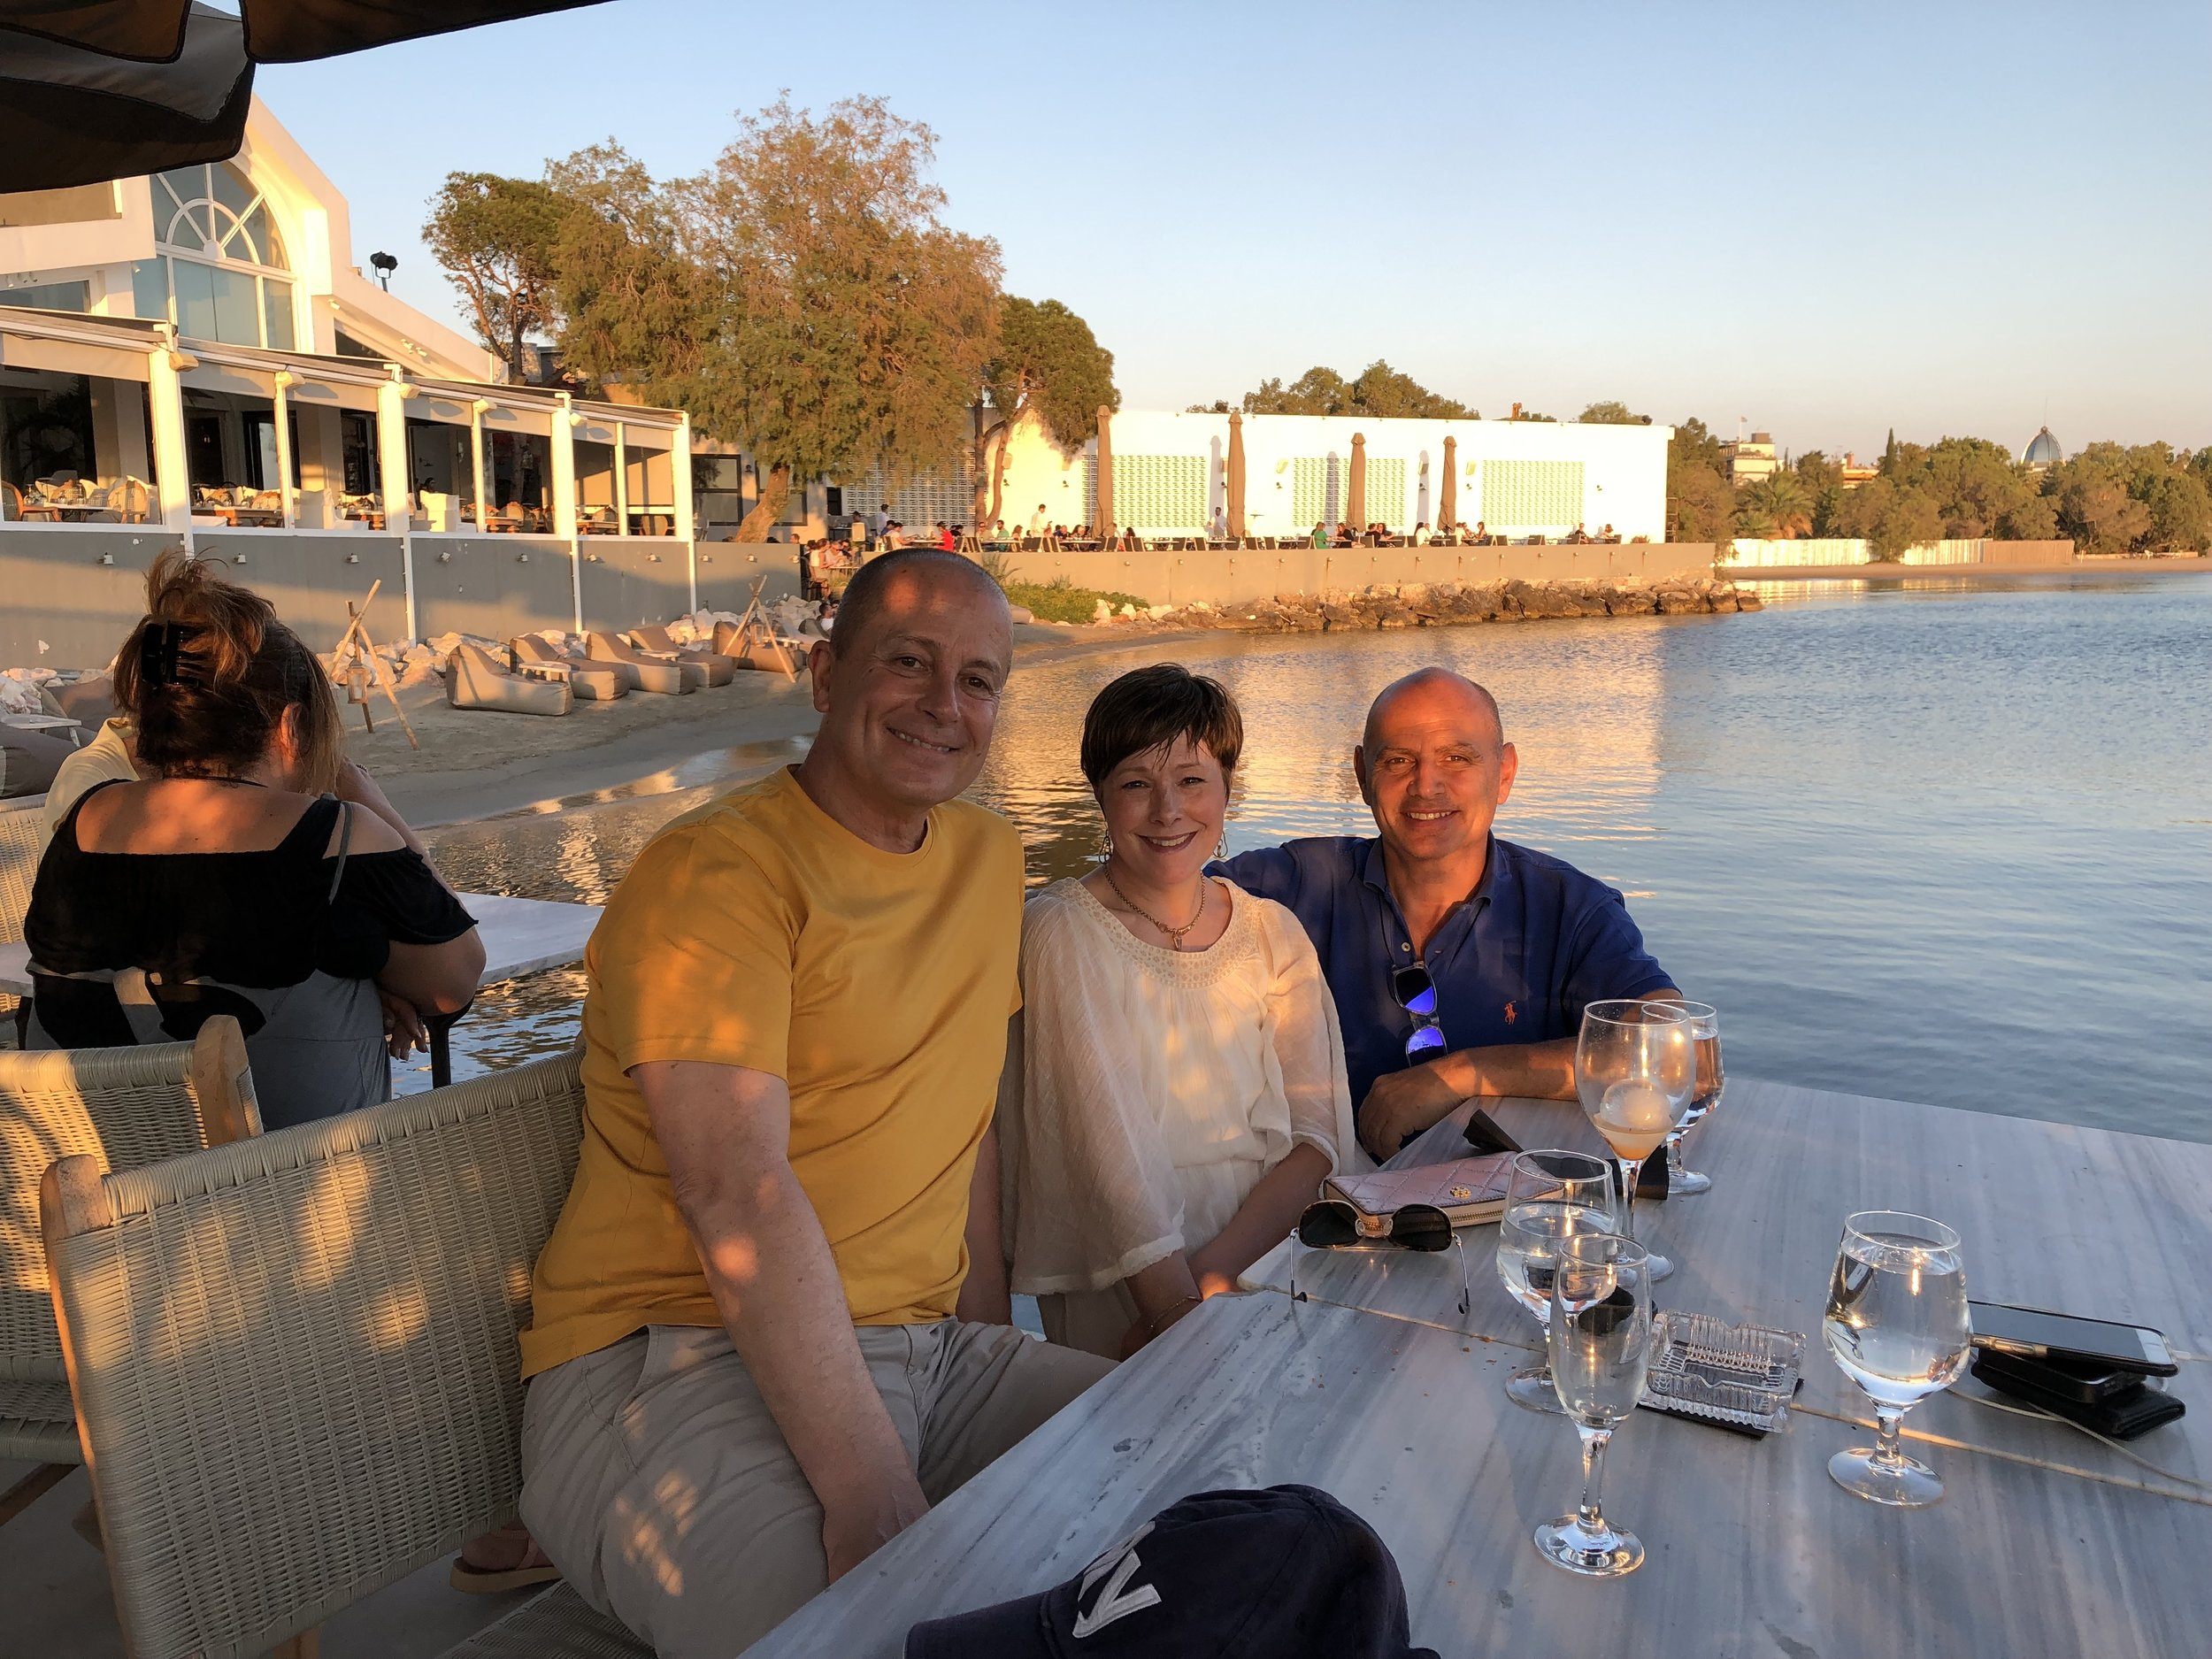 Michel King, Cecile Bankston, and Malcolm Muirhead in Greece